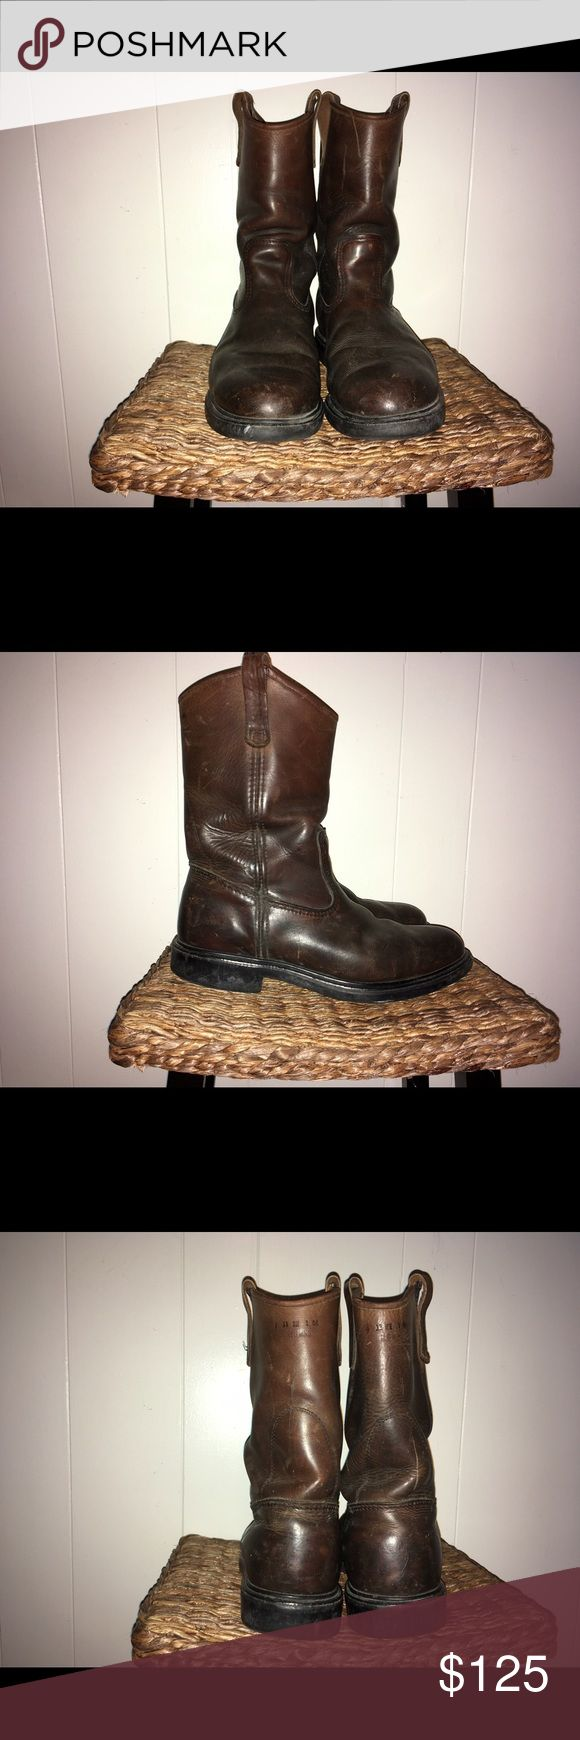 Men's Red Wing Pull-On Boots, EUC! These handsome boots are in excellent condition. They are worn in just right, at the right price! Red Wing Shoes Shoes Boots